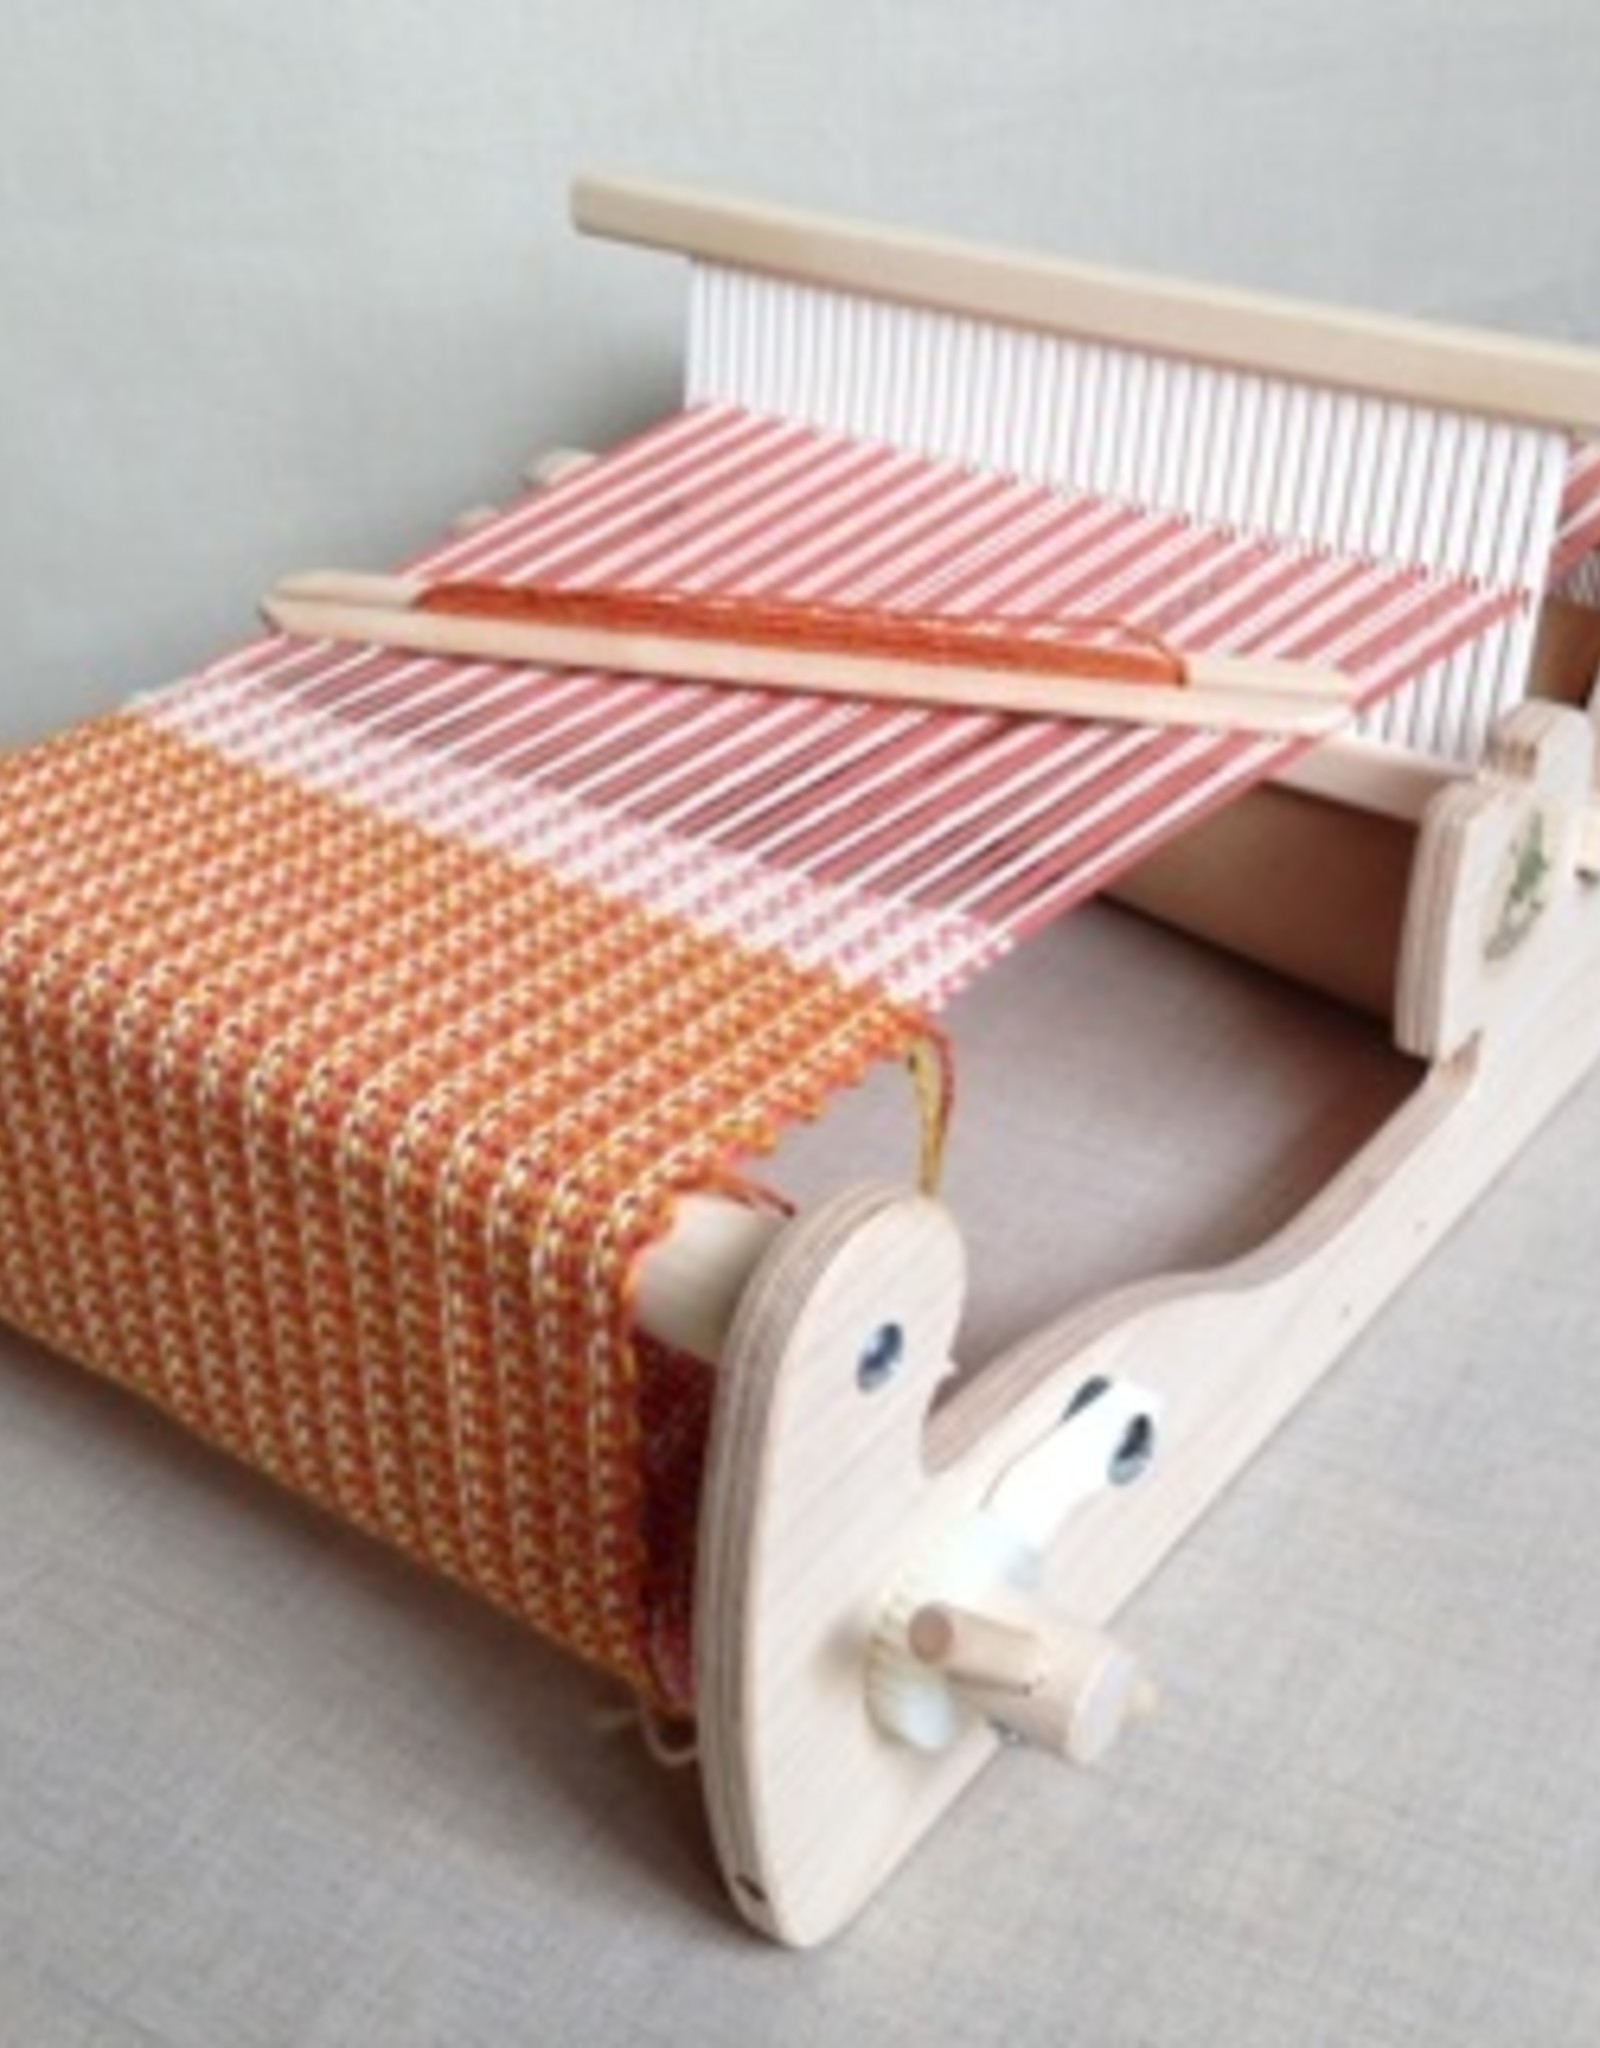 Learn to Weave, Thu, July 29, 1.30 - 3.30 (bring your own loom)